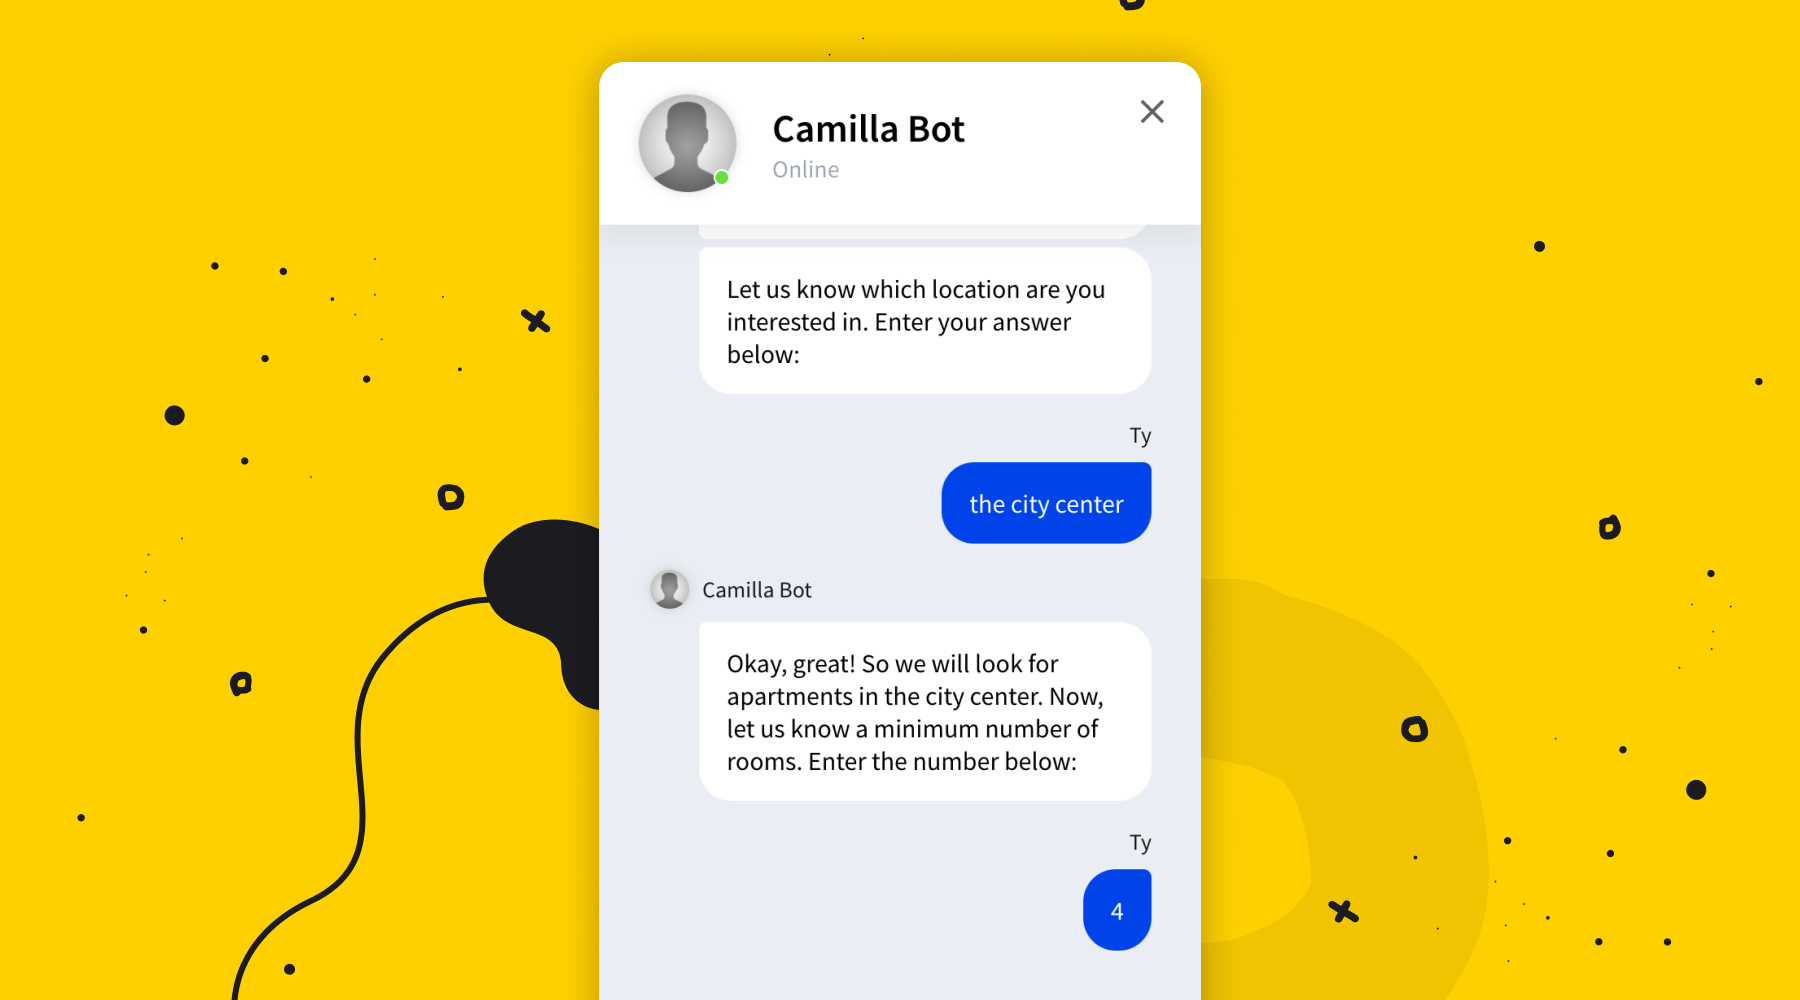 A real estate chatbot